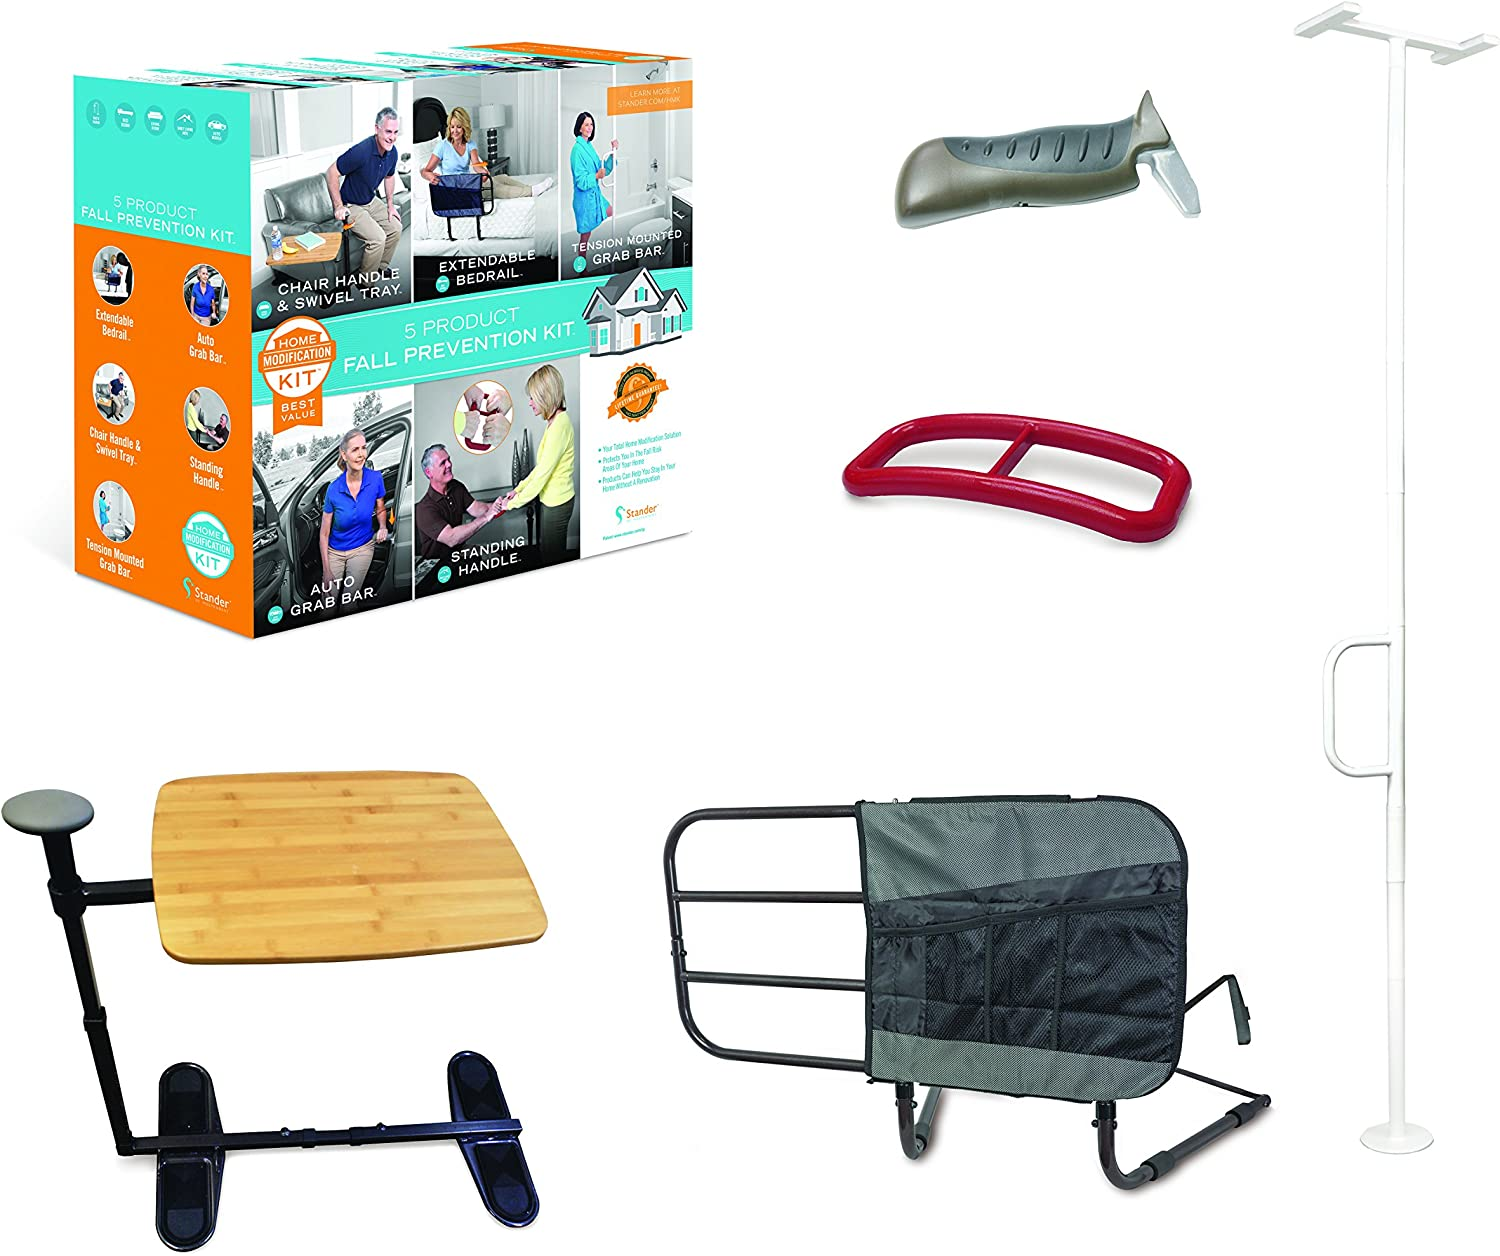 Stander 5 Piece Fall Prevention Kit - All in one Kit Includes Extendable Bed Rail, Chair Handle & Swivel Tray Table, Tension Mounted Grab Bar, Auto Grab Bar & Standing Handle